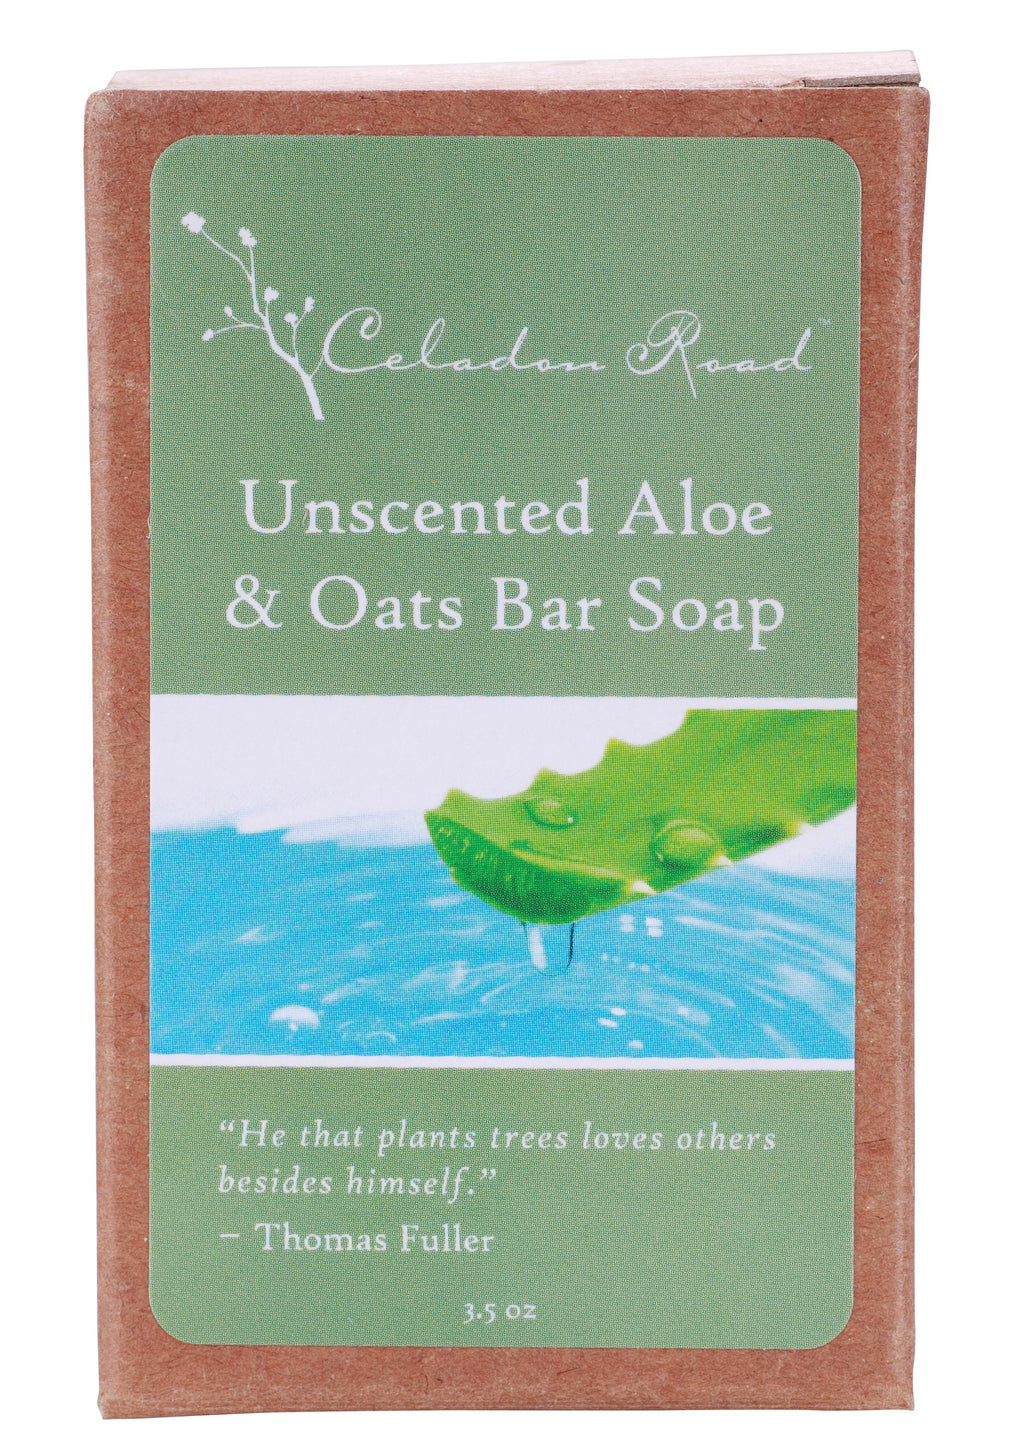 Unscented Aloe & Oats Bar Soap- Celadon Road- www.celadonroad.com